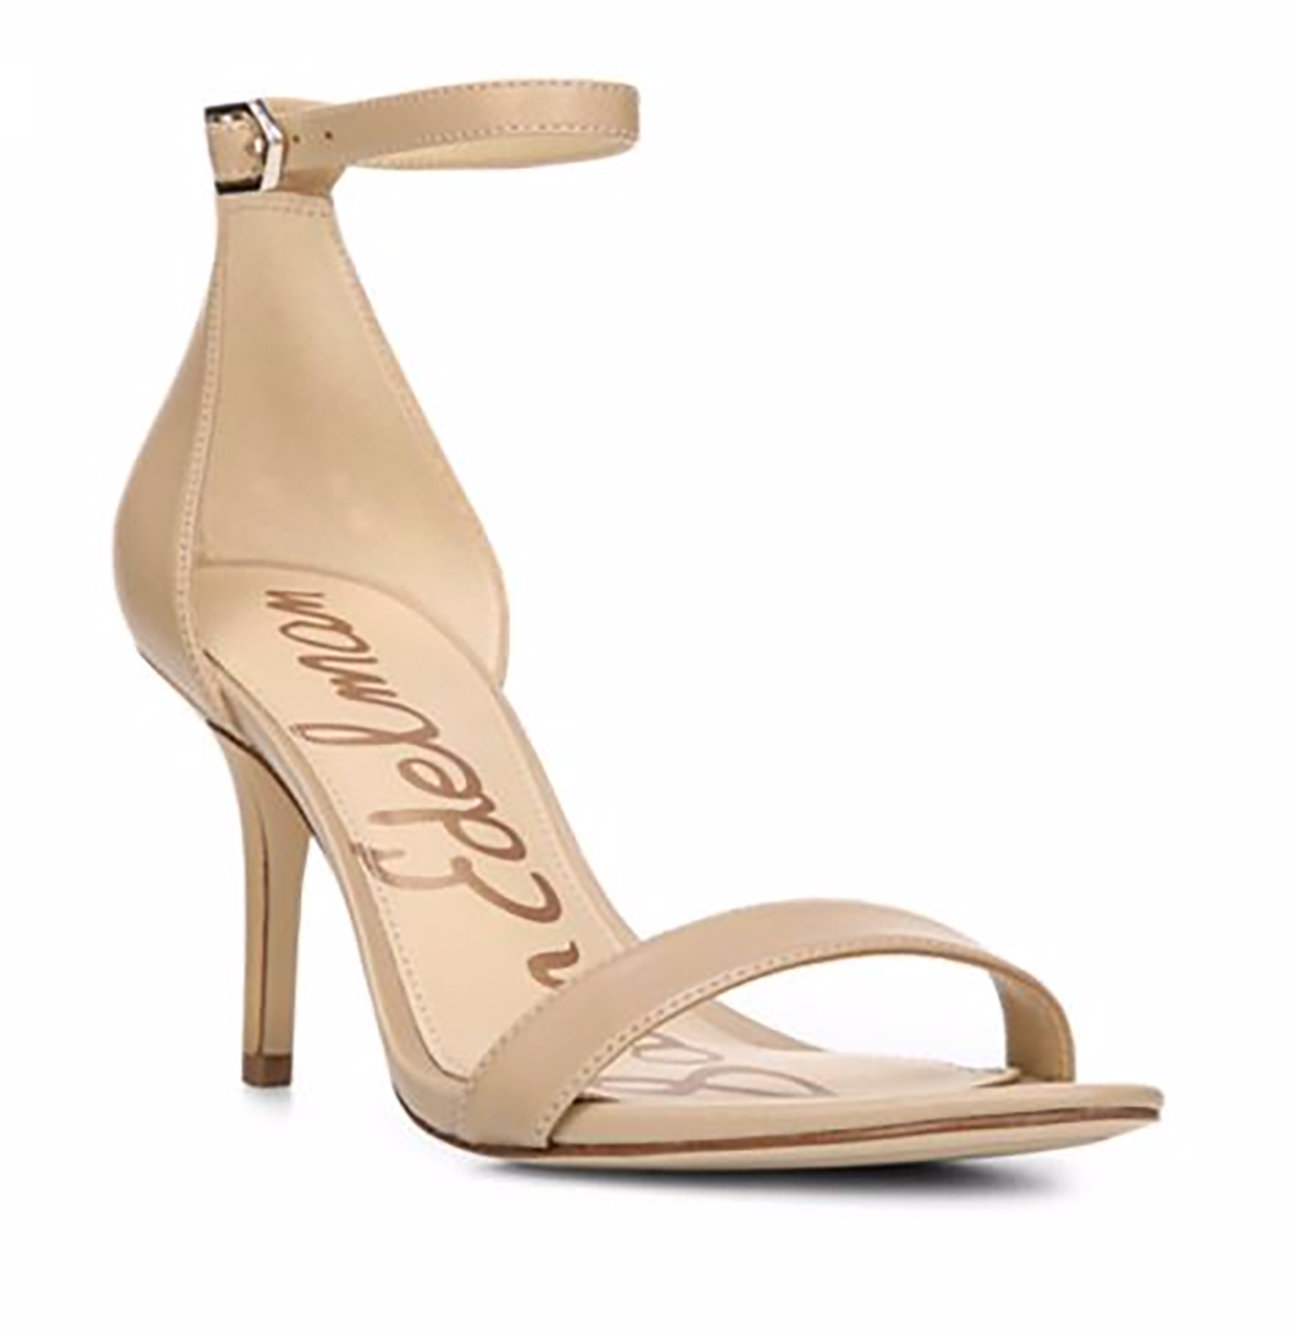 9b7e9a908ce I Wear These Comfortable Heels to Every Wedding I Attend